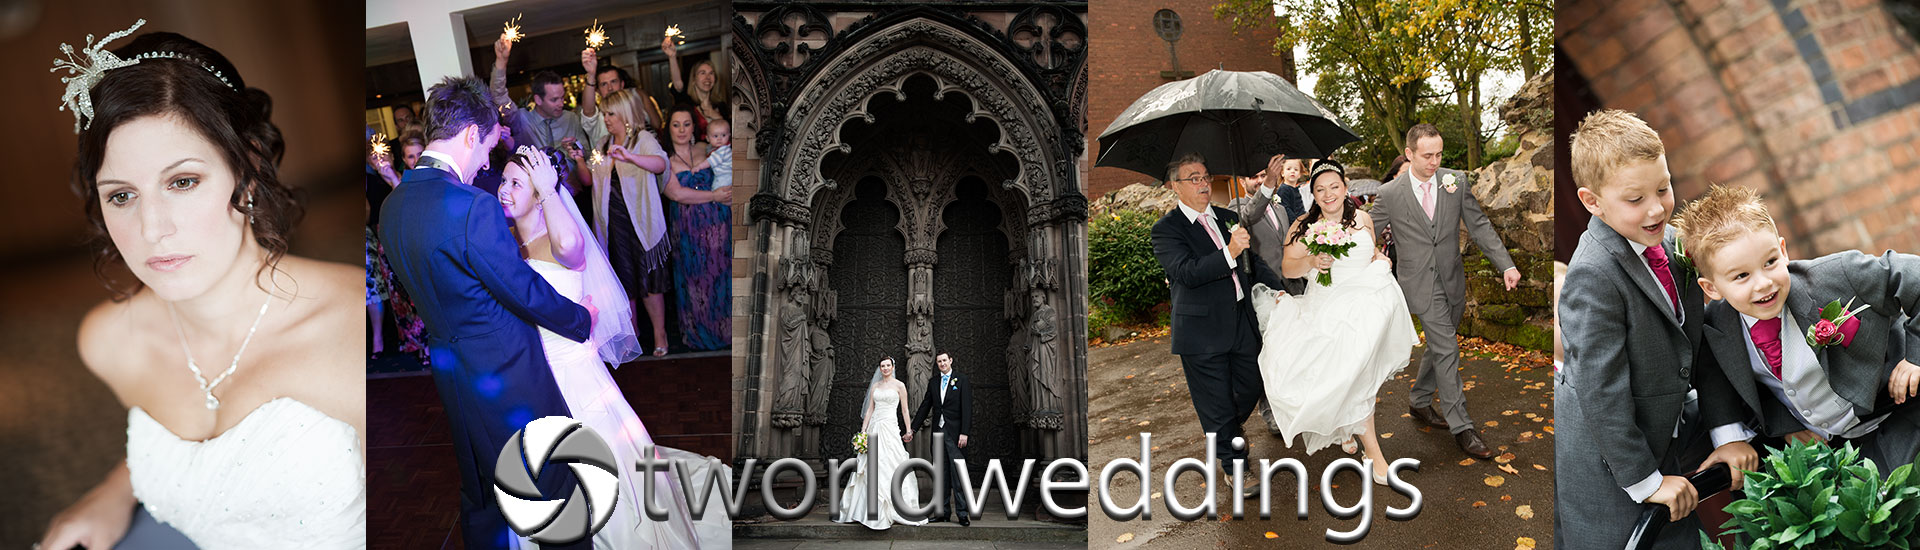 Group wedding pictures from wedding service provider of photographers,make up artists,hair stylist UK & overseas